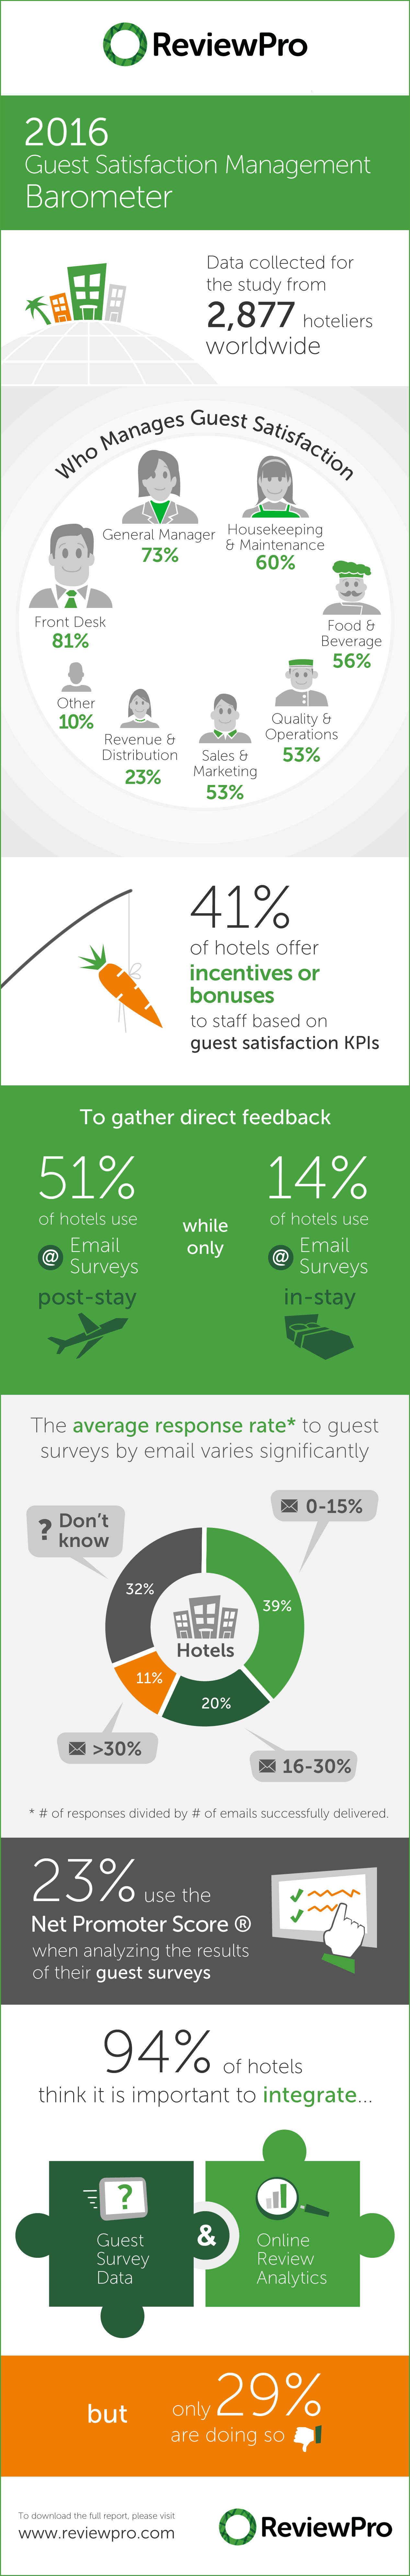 Only 29% of hotels are fully leveraging Guest Intelligence